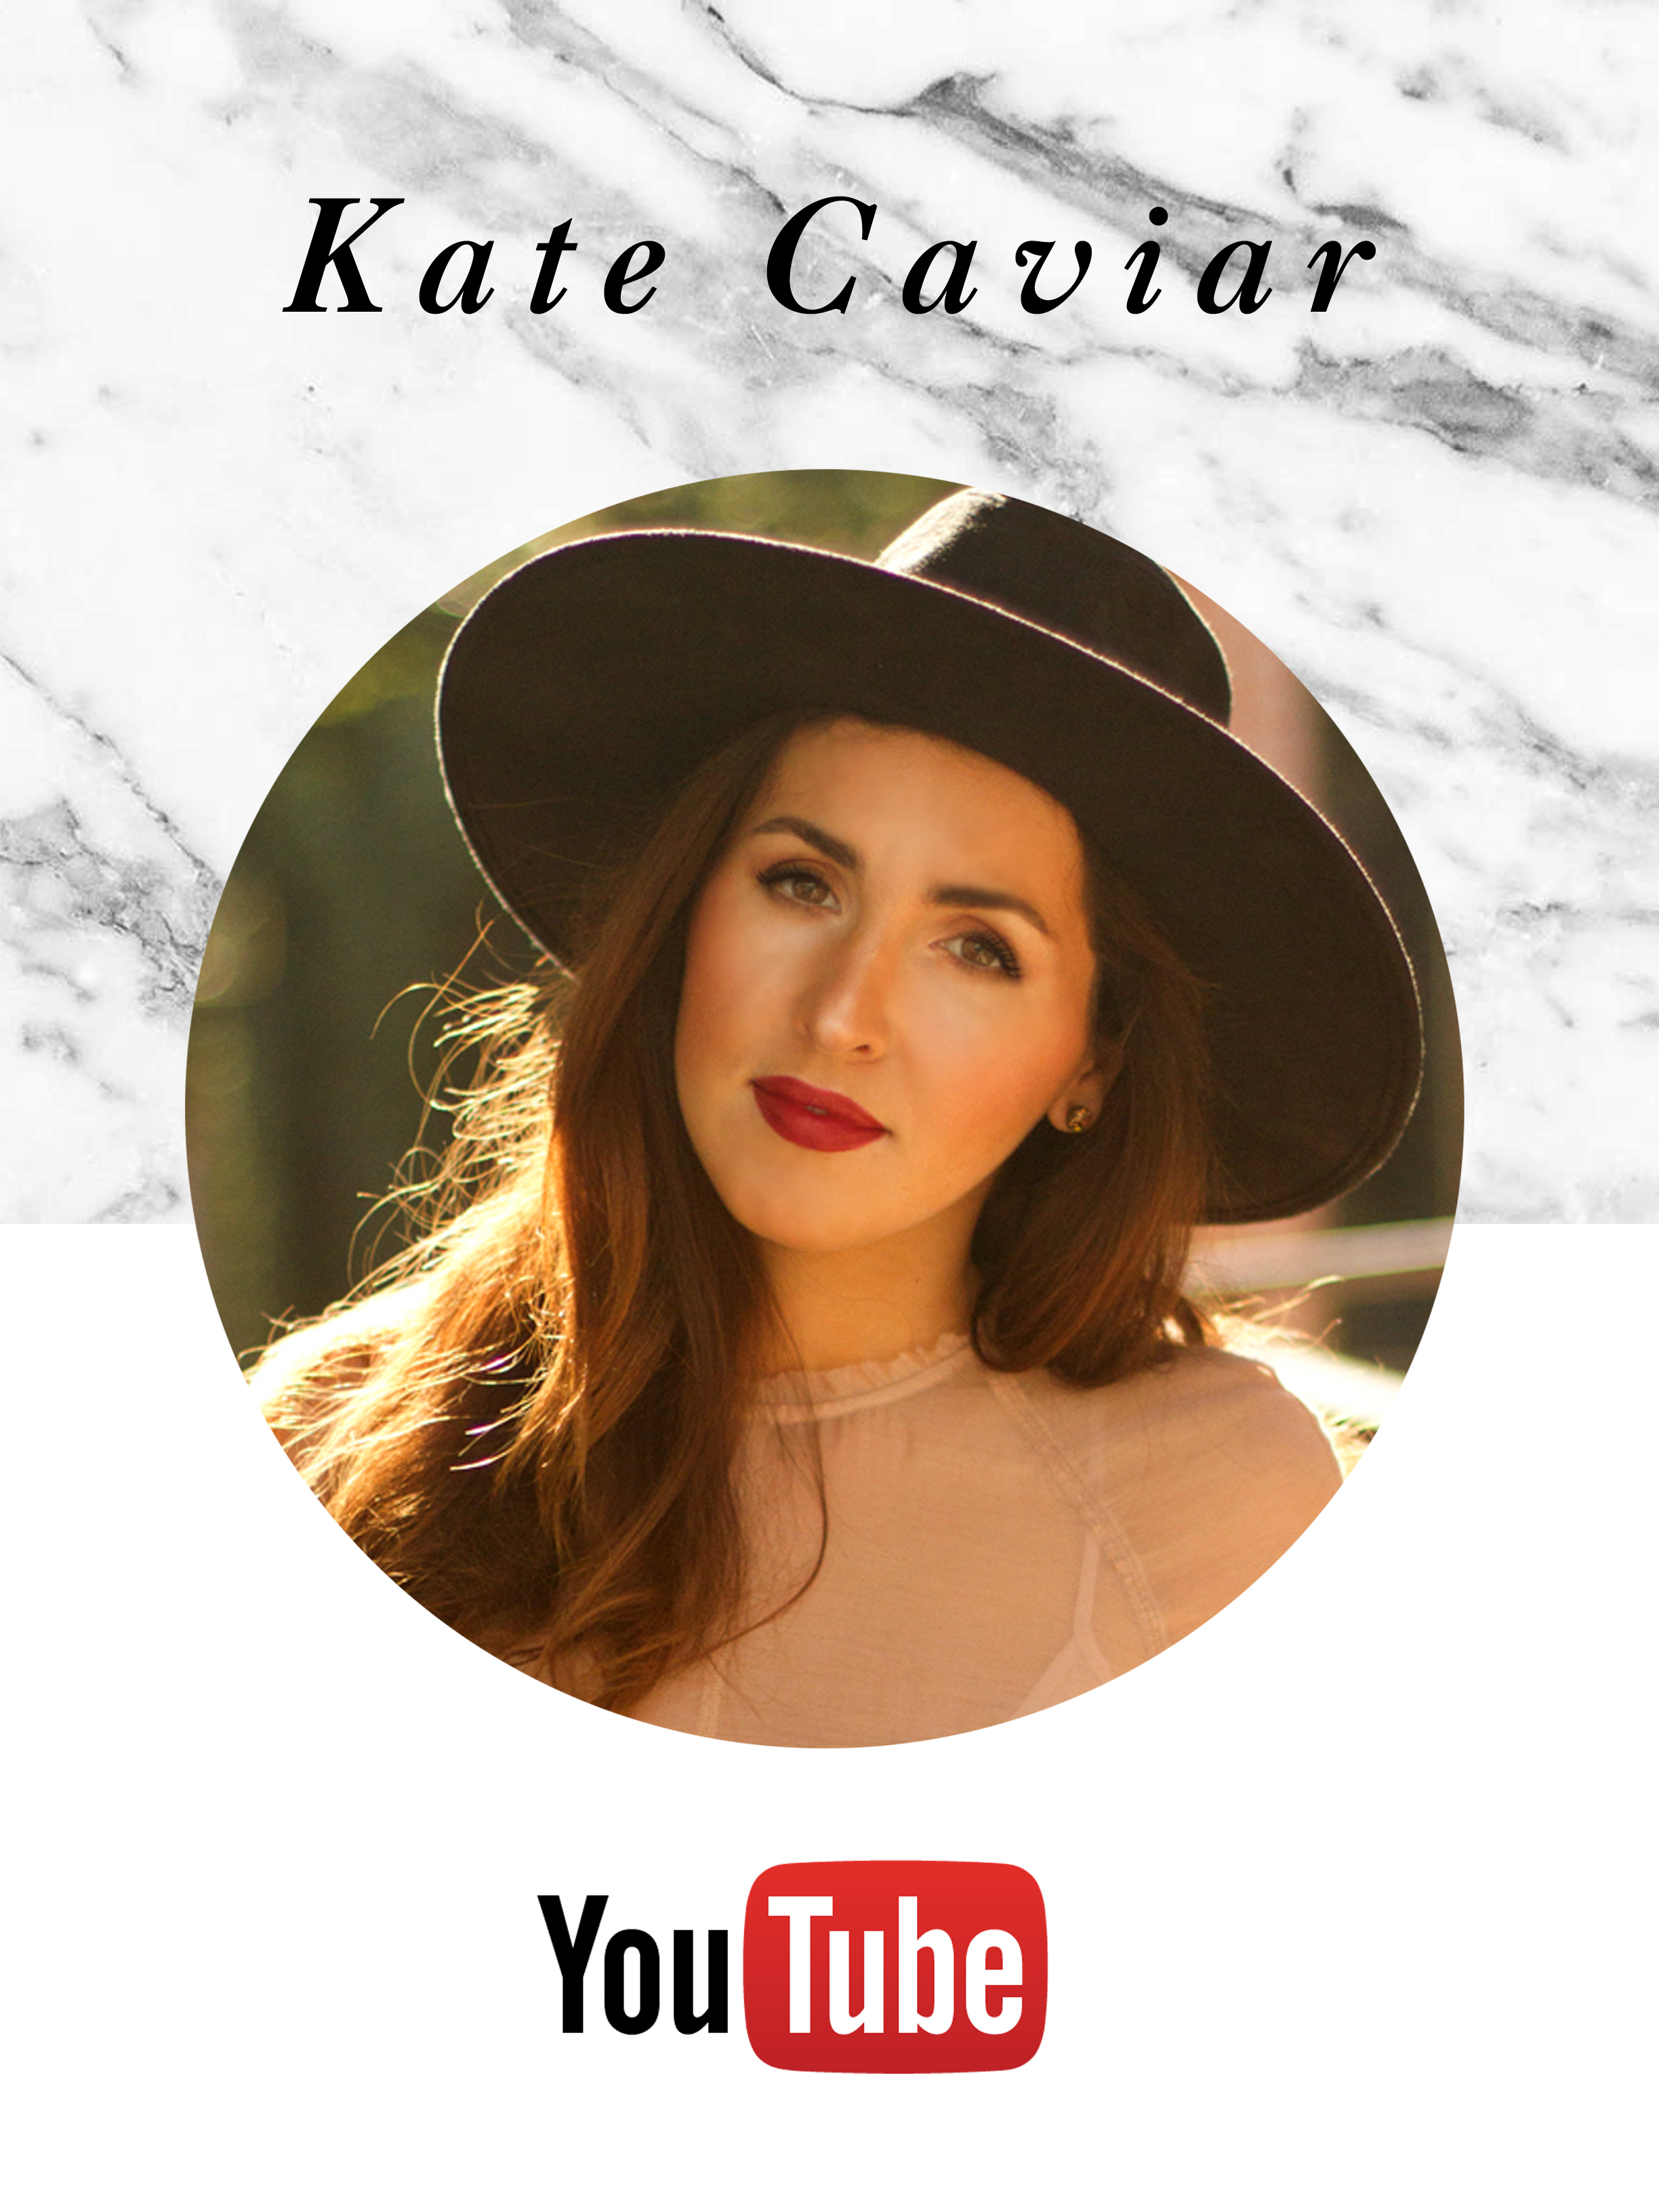 kate caviar youtube subscribe pic.jpg